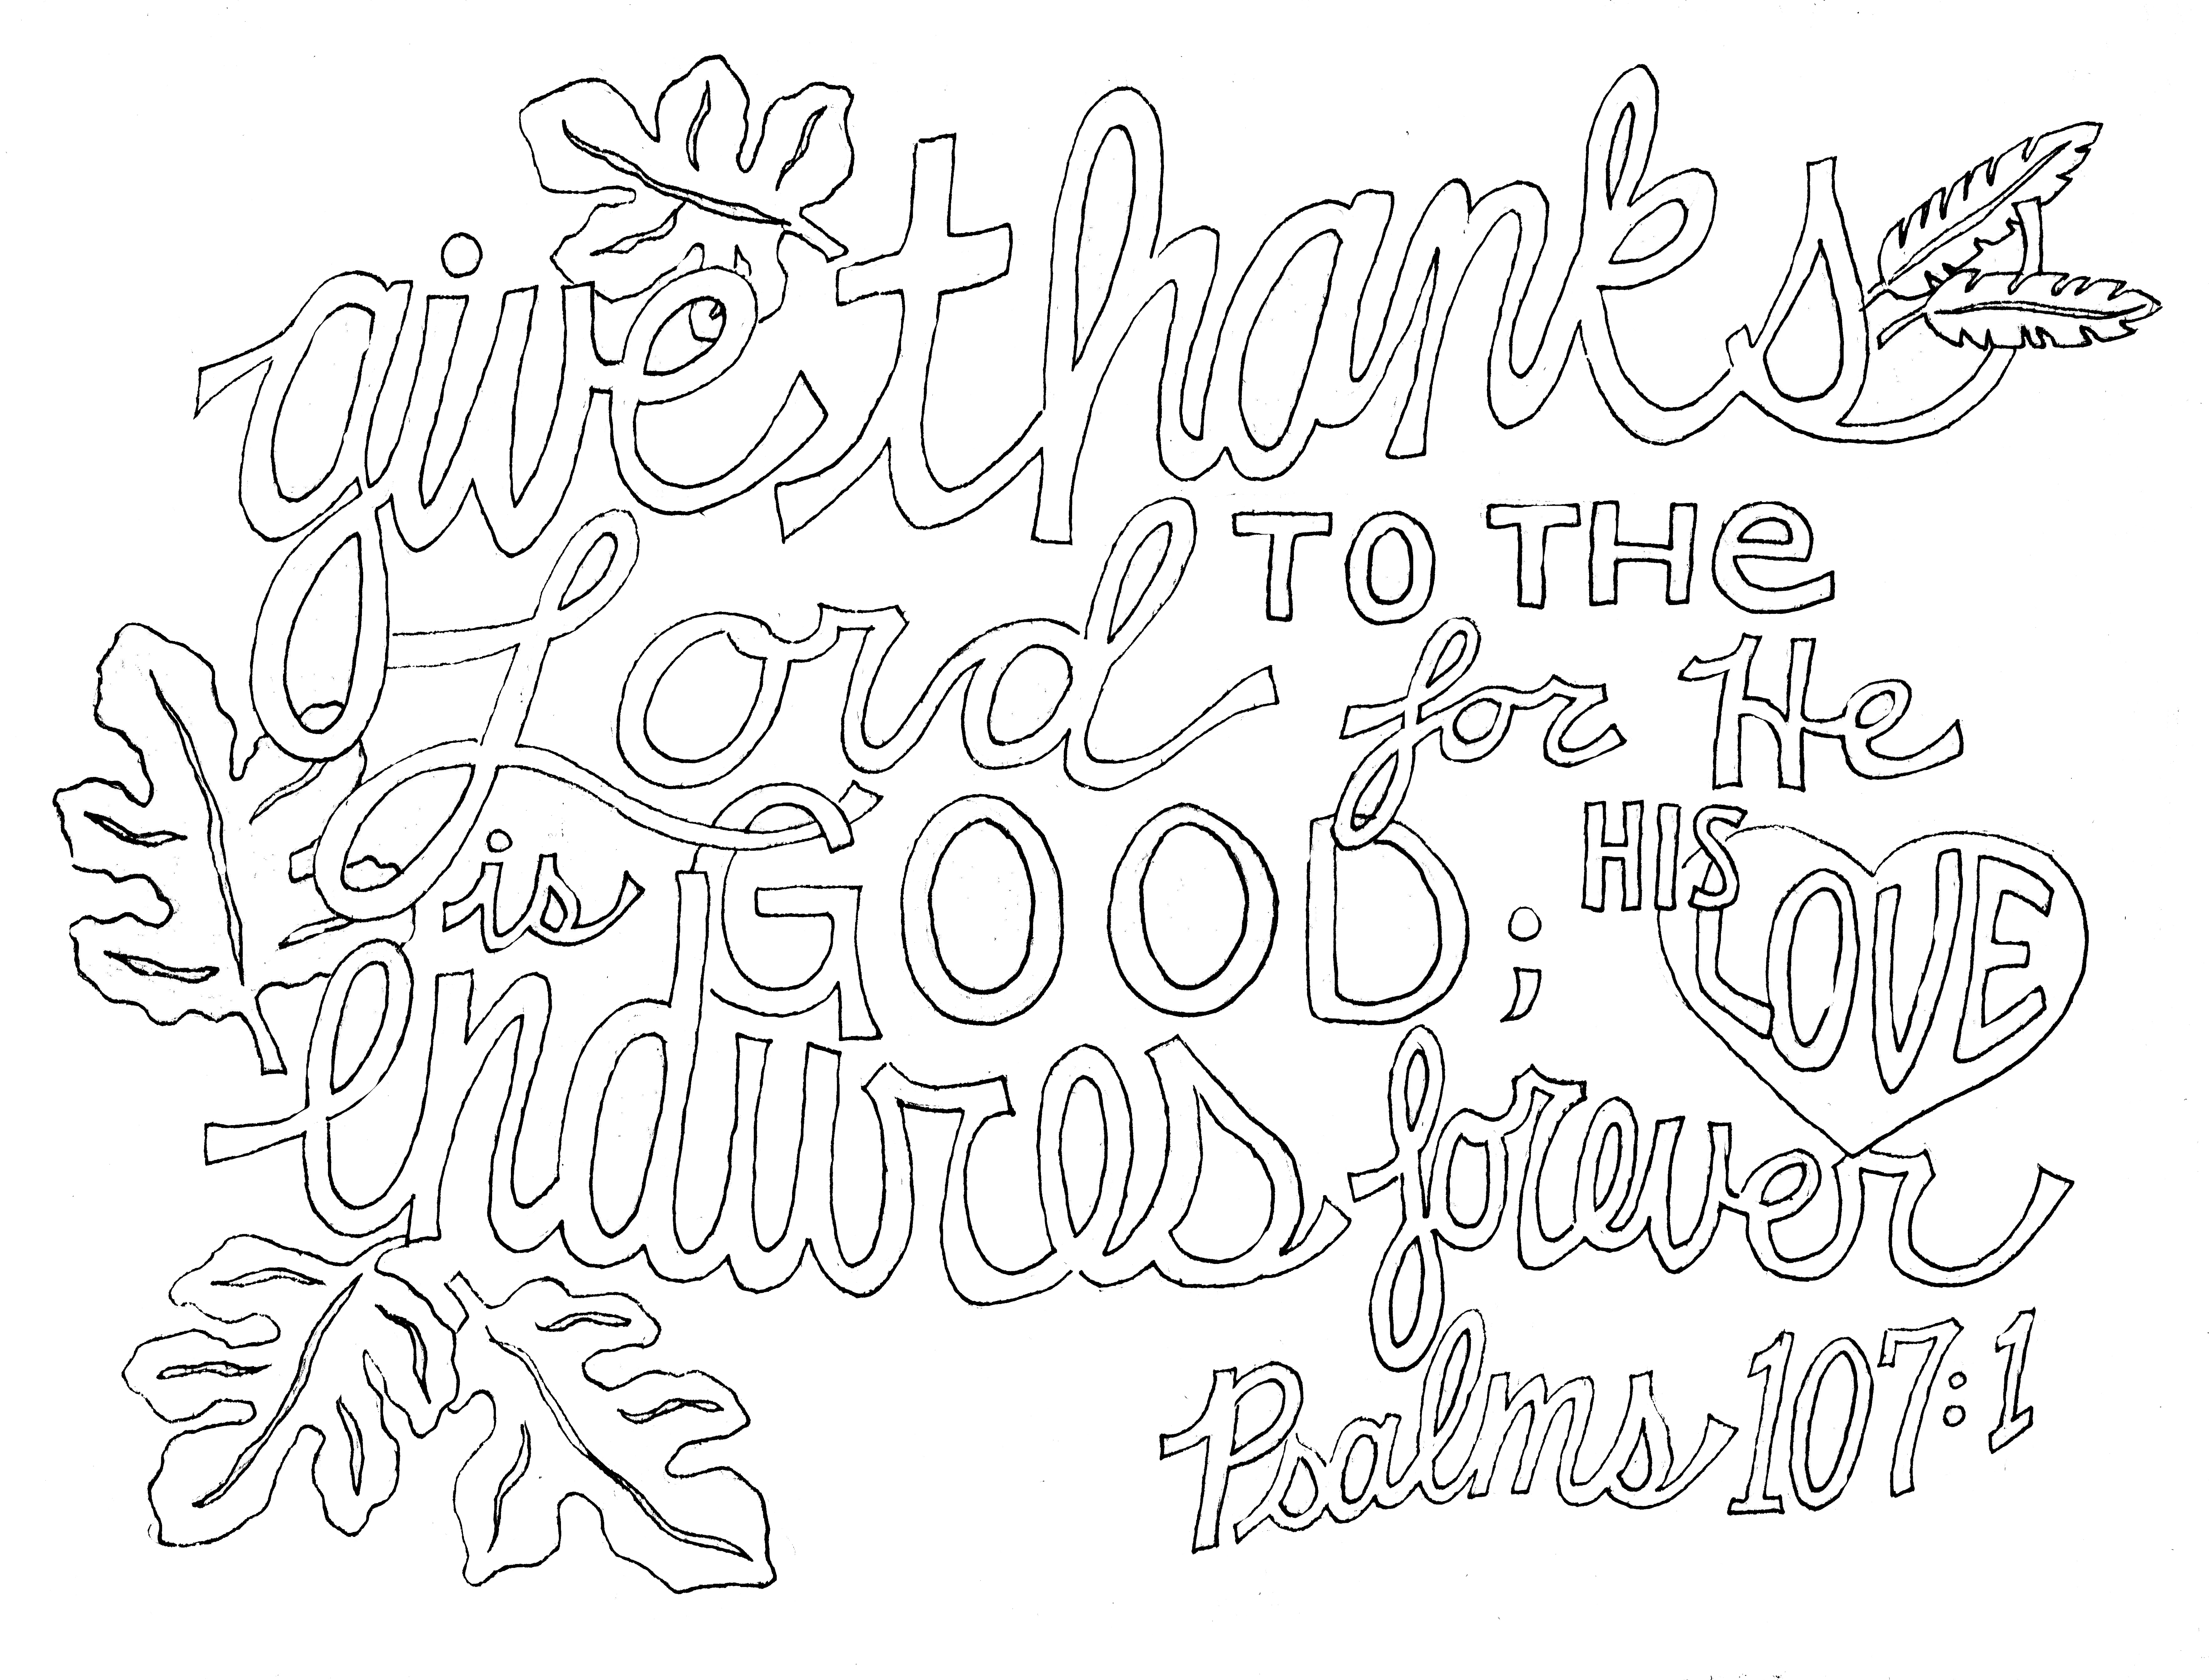 7056x5367 psalm christian inspiration 7056x5367 psalm christian inspiration 1600x1200 thank you coloring pages free teacher christmas firefighters